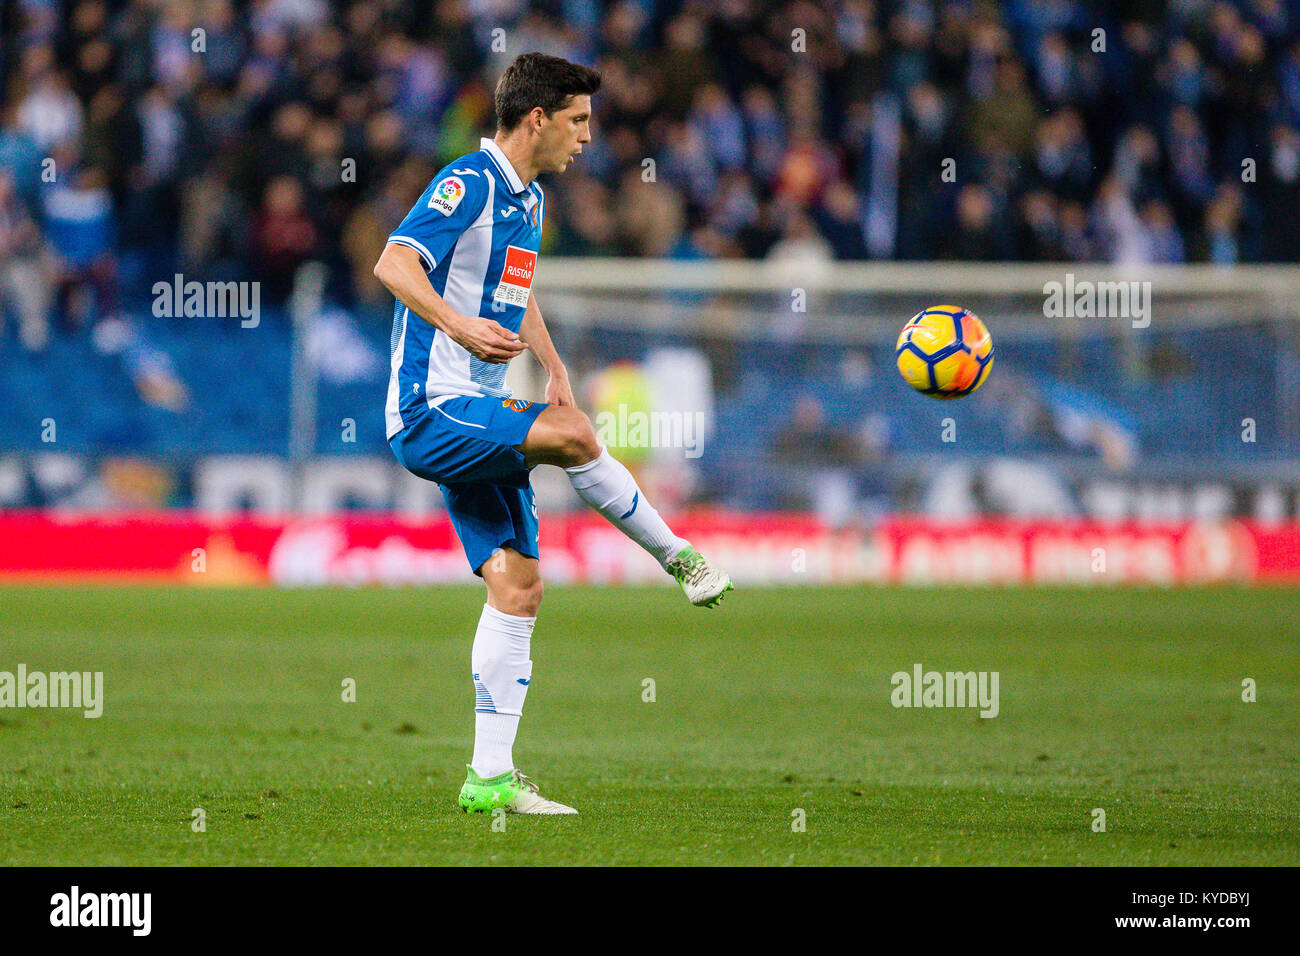 RCD Espanyol defender Javi Lopez (16) during the match between RCD Espanyol v Athletic Club, for the round 19 of - Stock Image